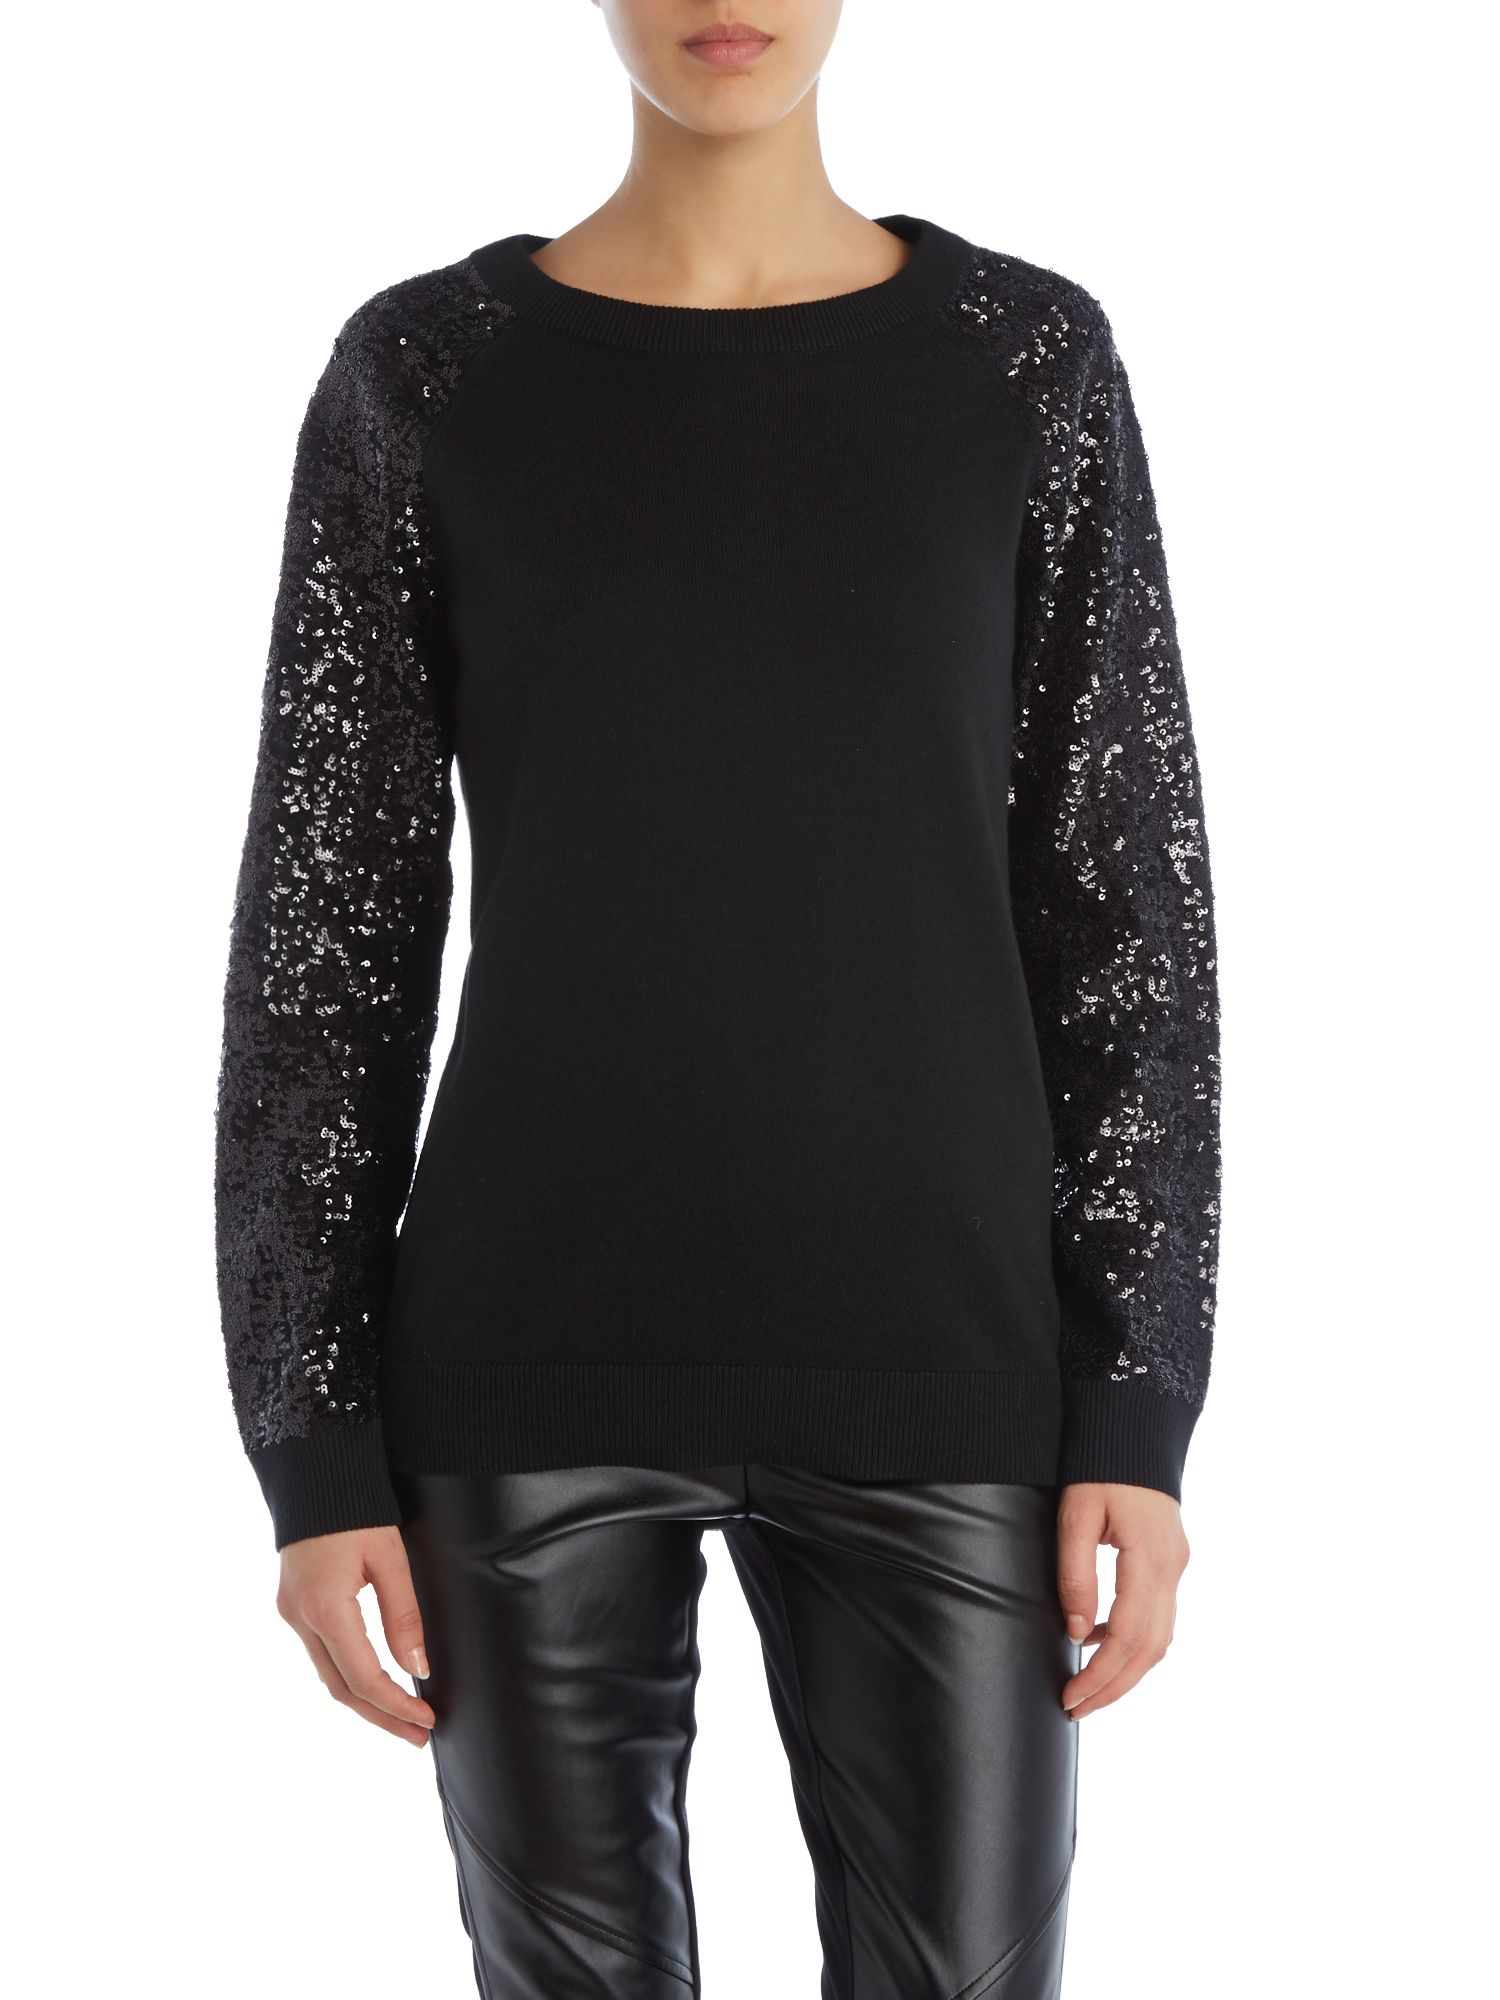 Raglan jumper with sequinned sleeves